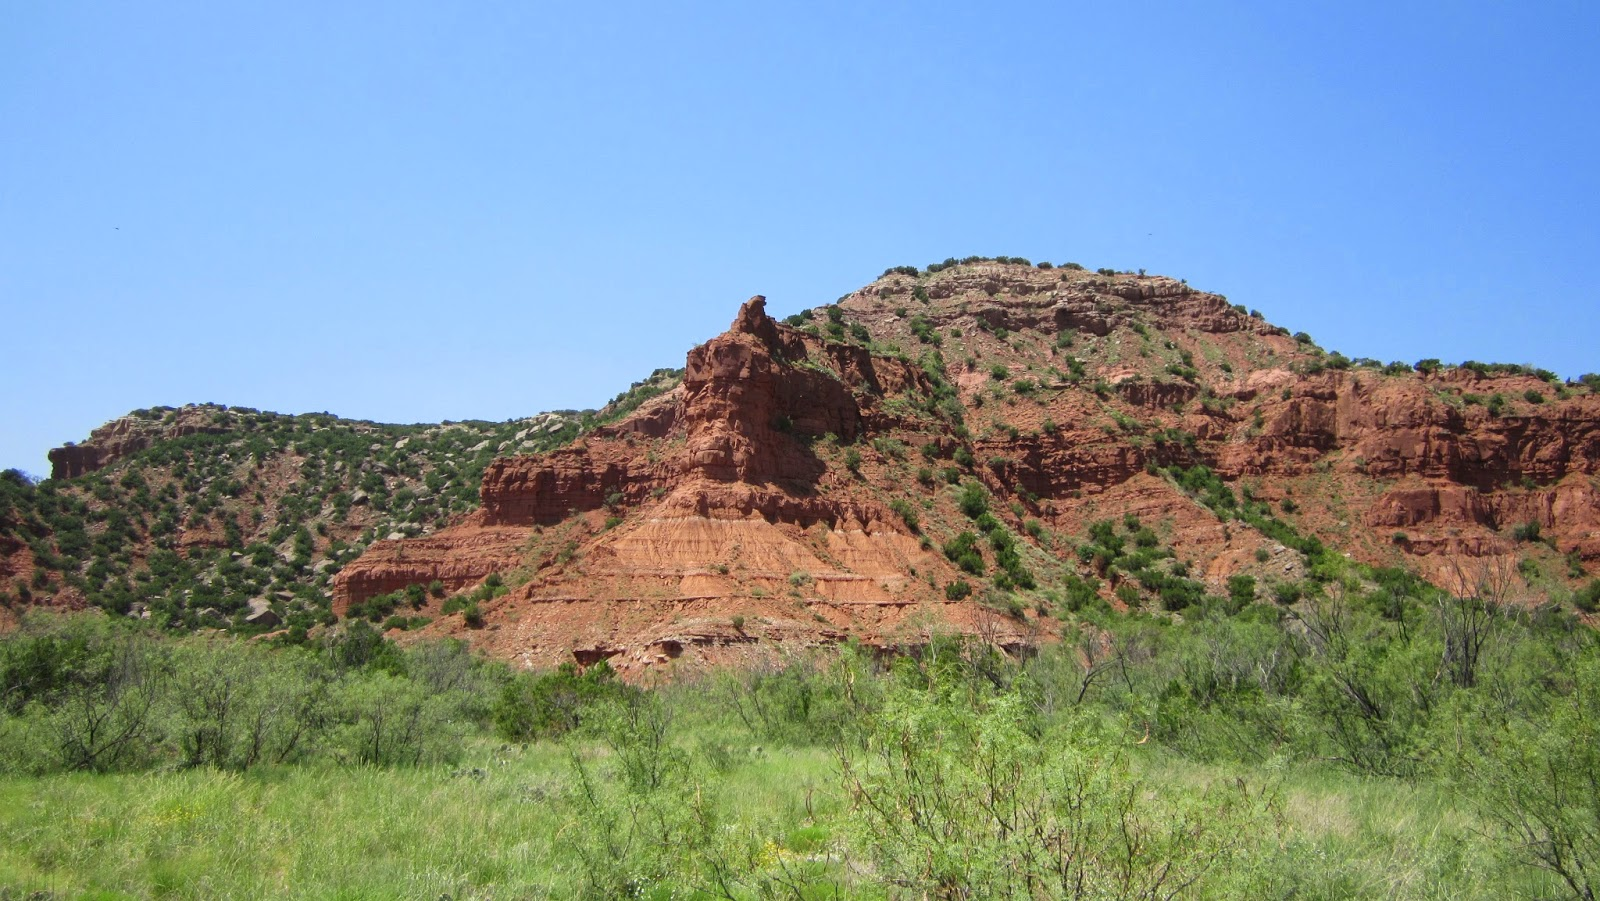 http://www.tpwd.state.tx.us/state-parks/caprock-canyons